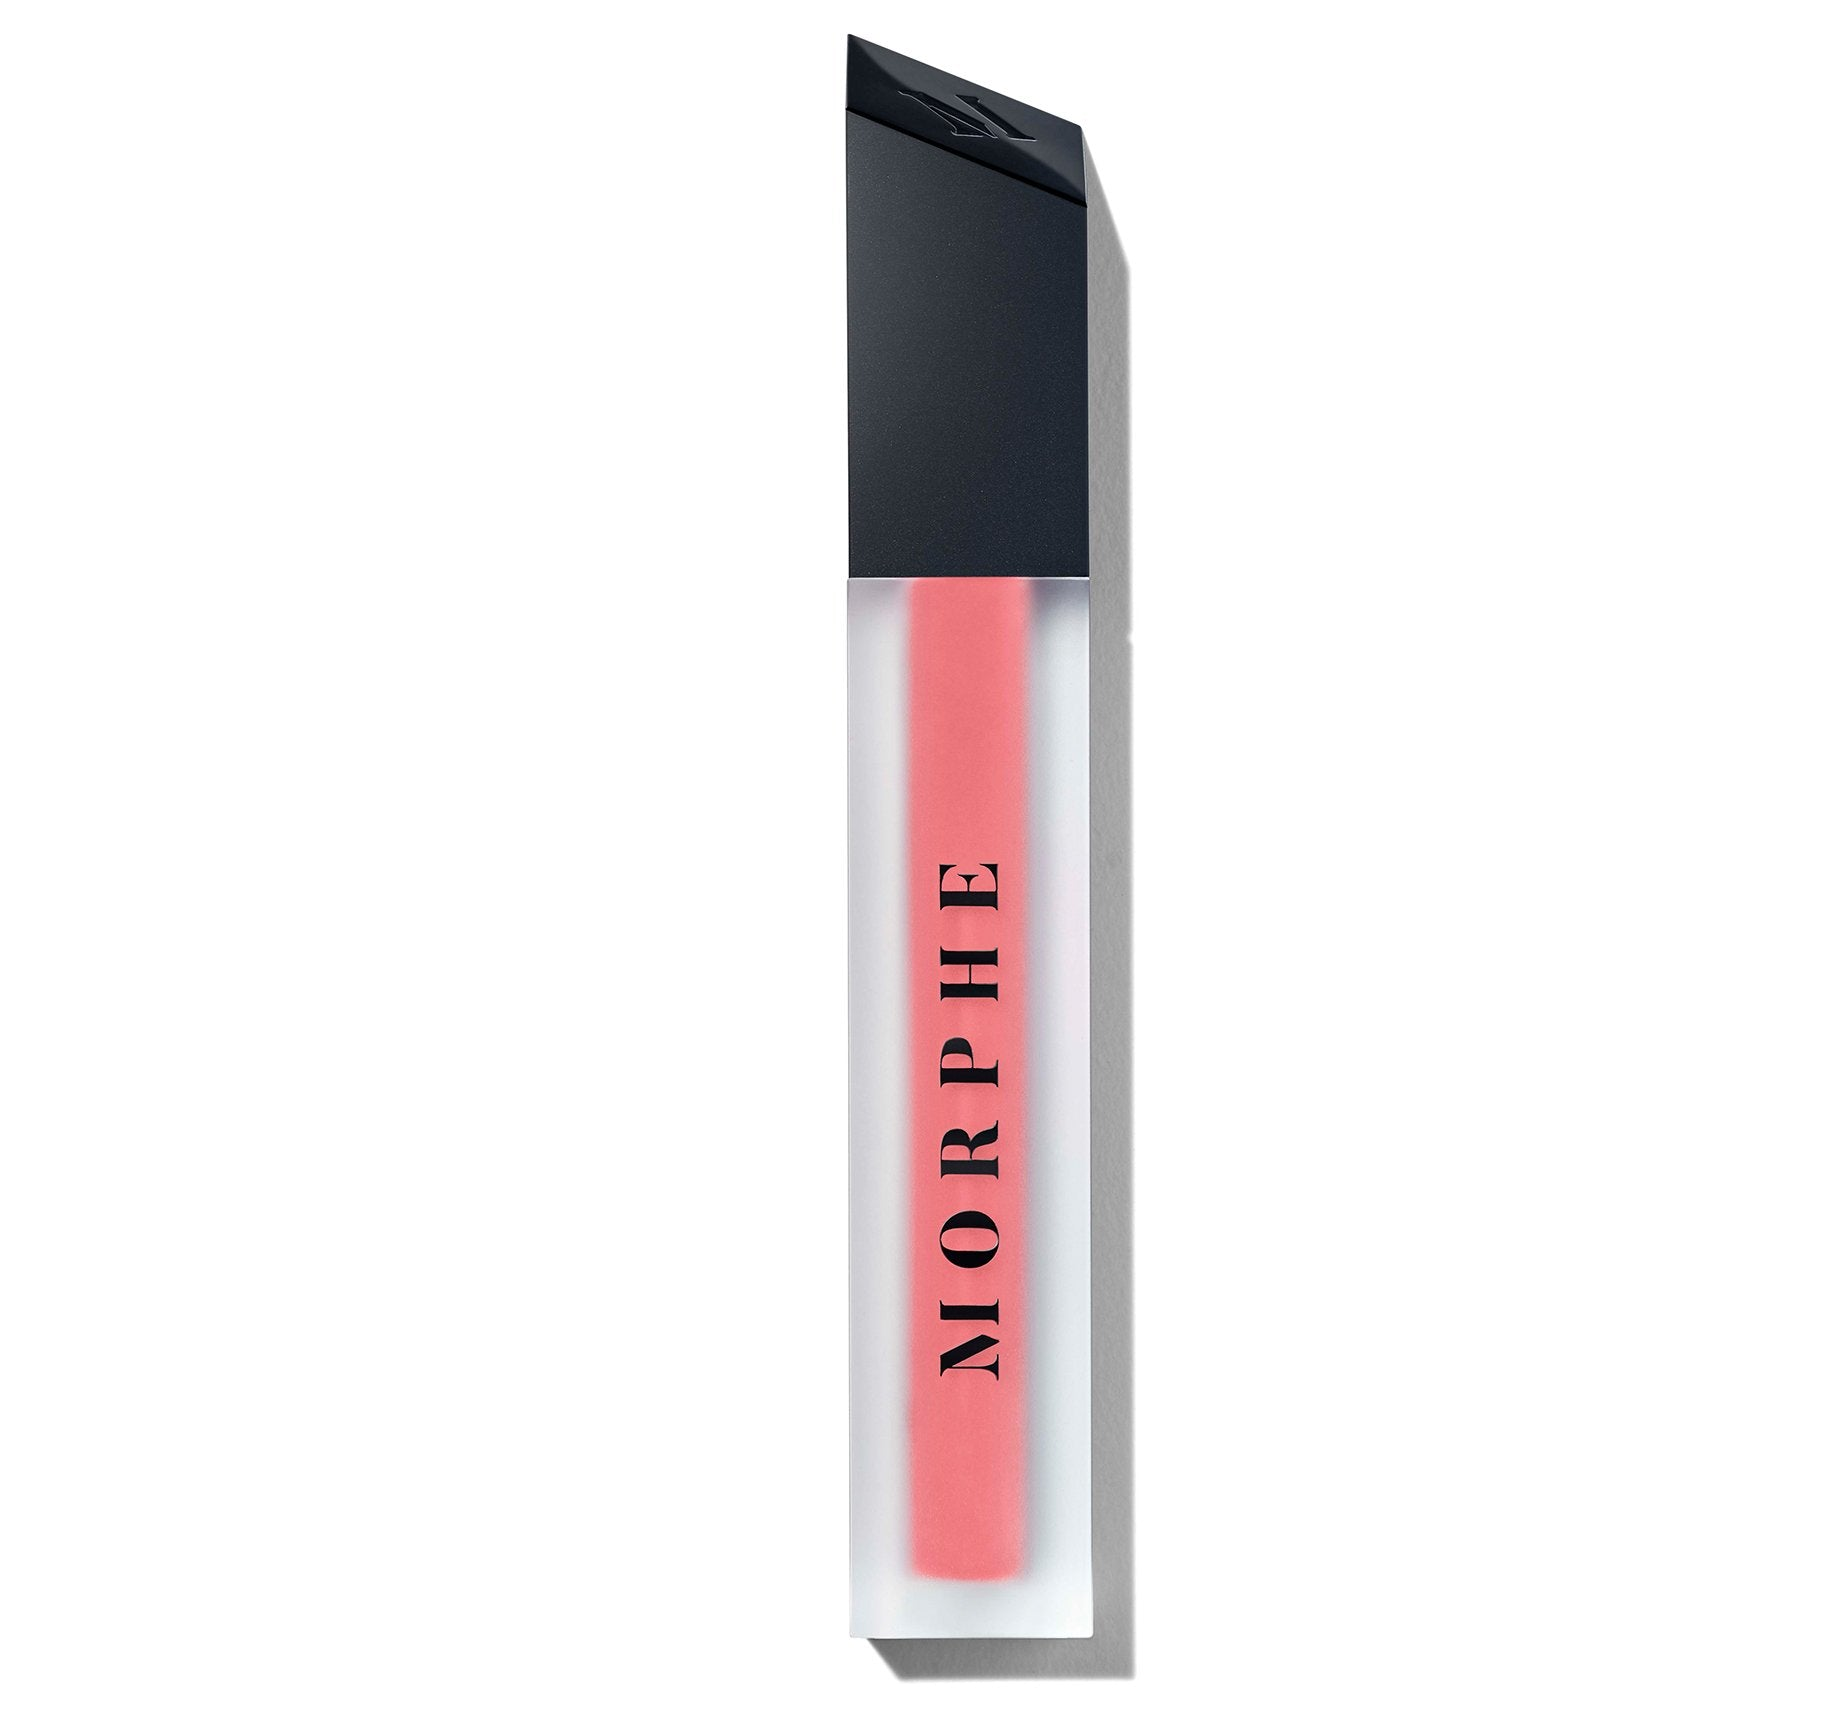 MATTE LIQUID LIPSTICK - SCHOOLGIRL, view larger image